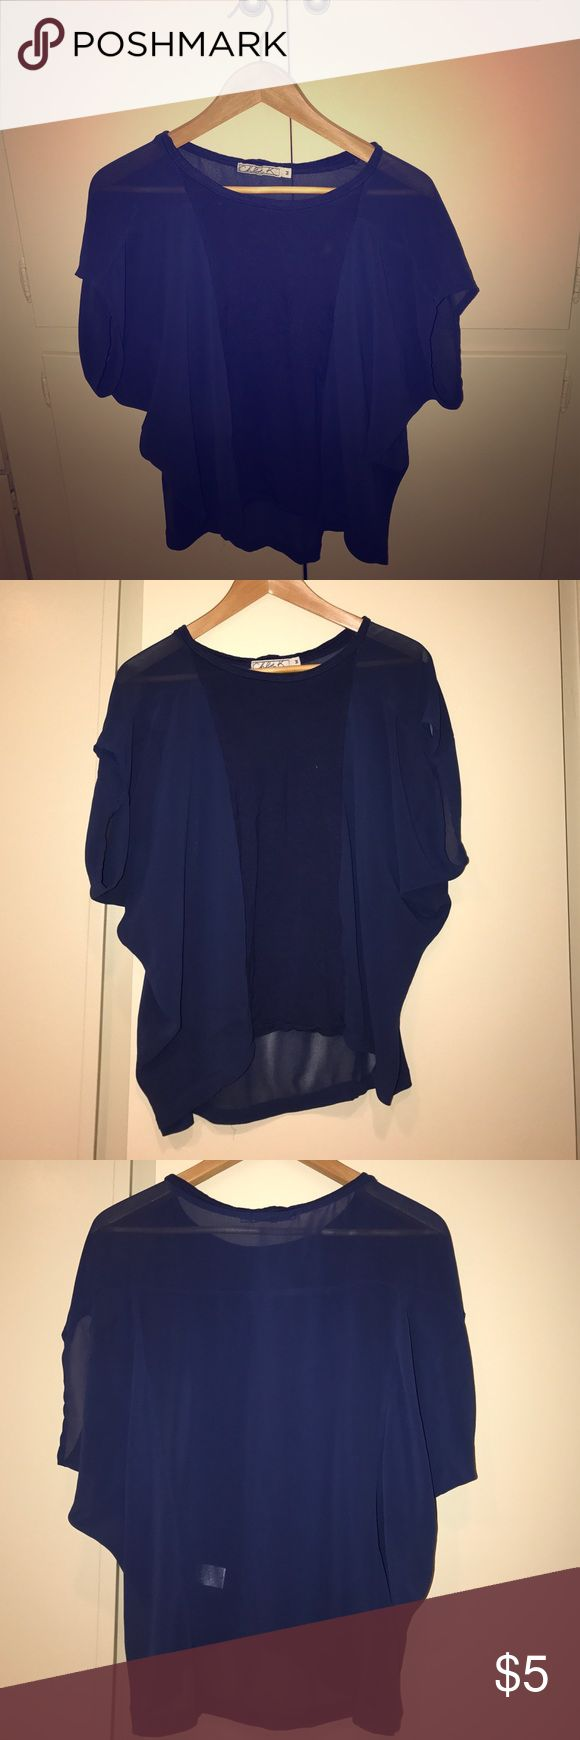 Short sleeved royal blue batwing top Easy, casual short sleeved batwing top from Chloe K in royal blue. Size M. 100% polyester and contrast panel in front is 100% rayon. Originally purchased at Nordstrom. Chloe K Tops Blouses